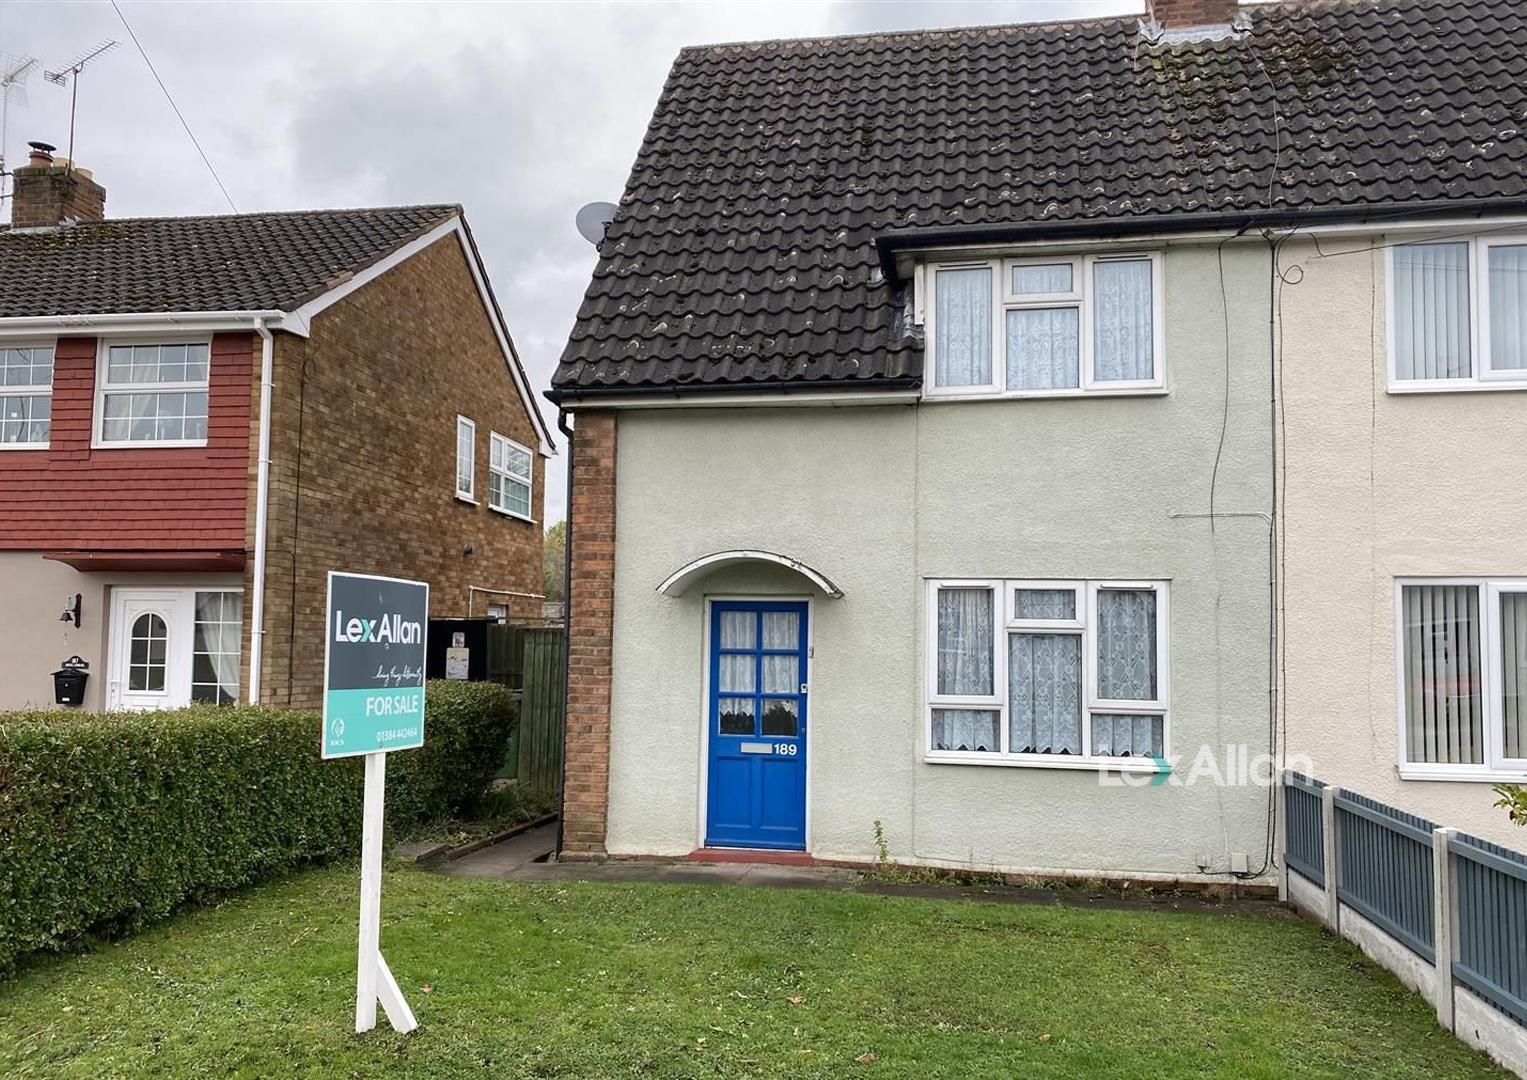 2 bed semi-detached for sale, DY1